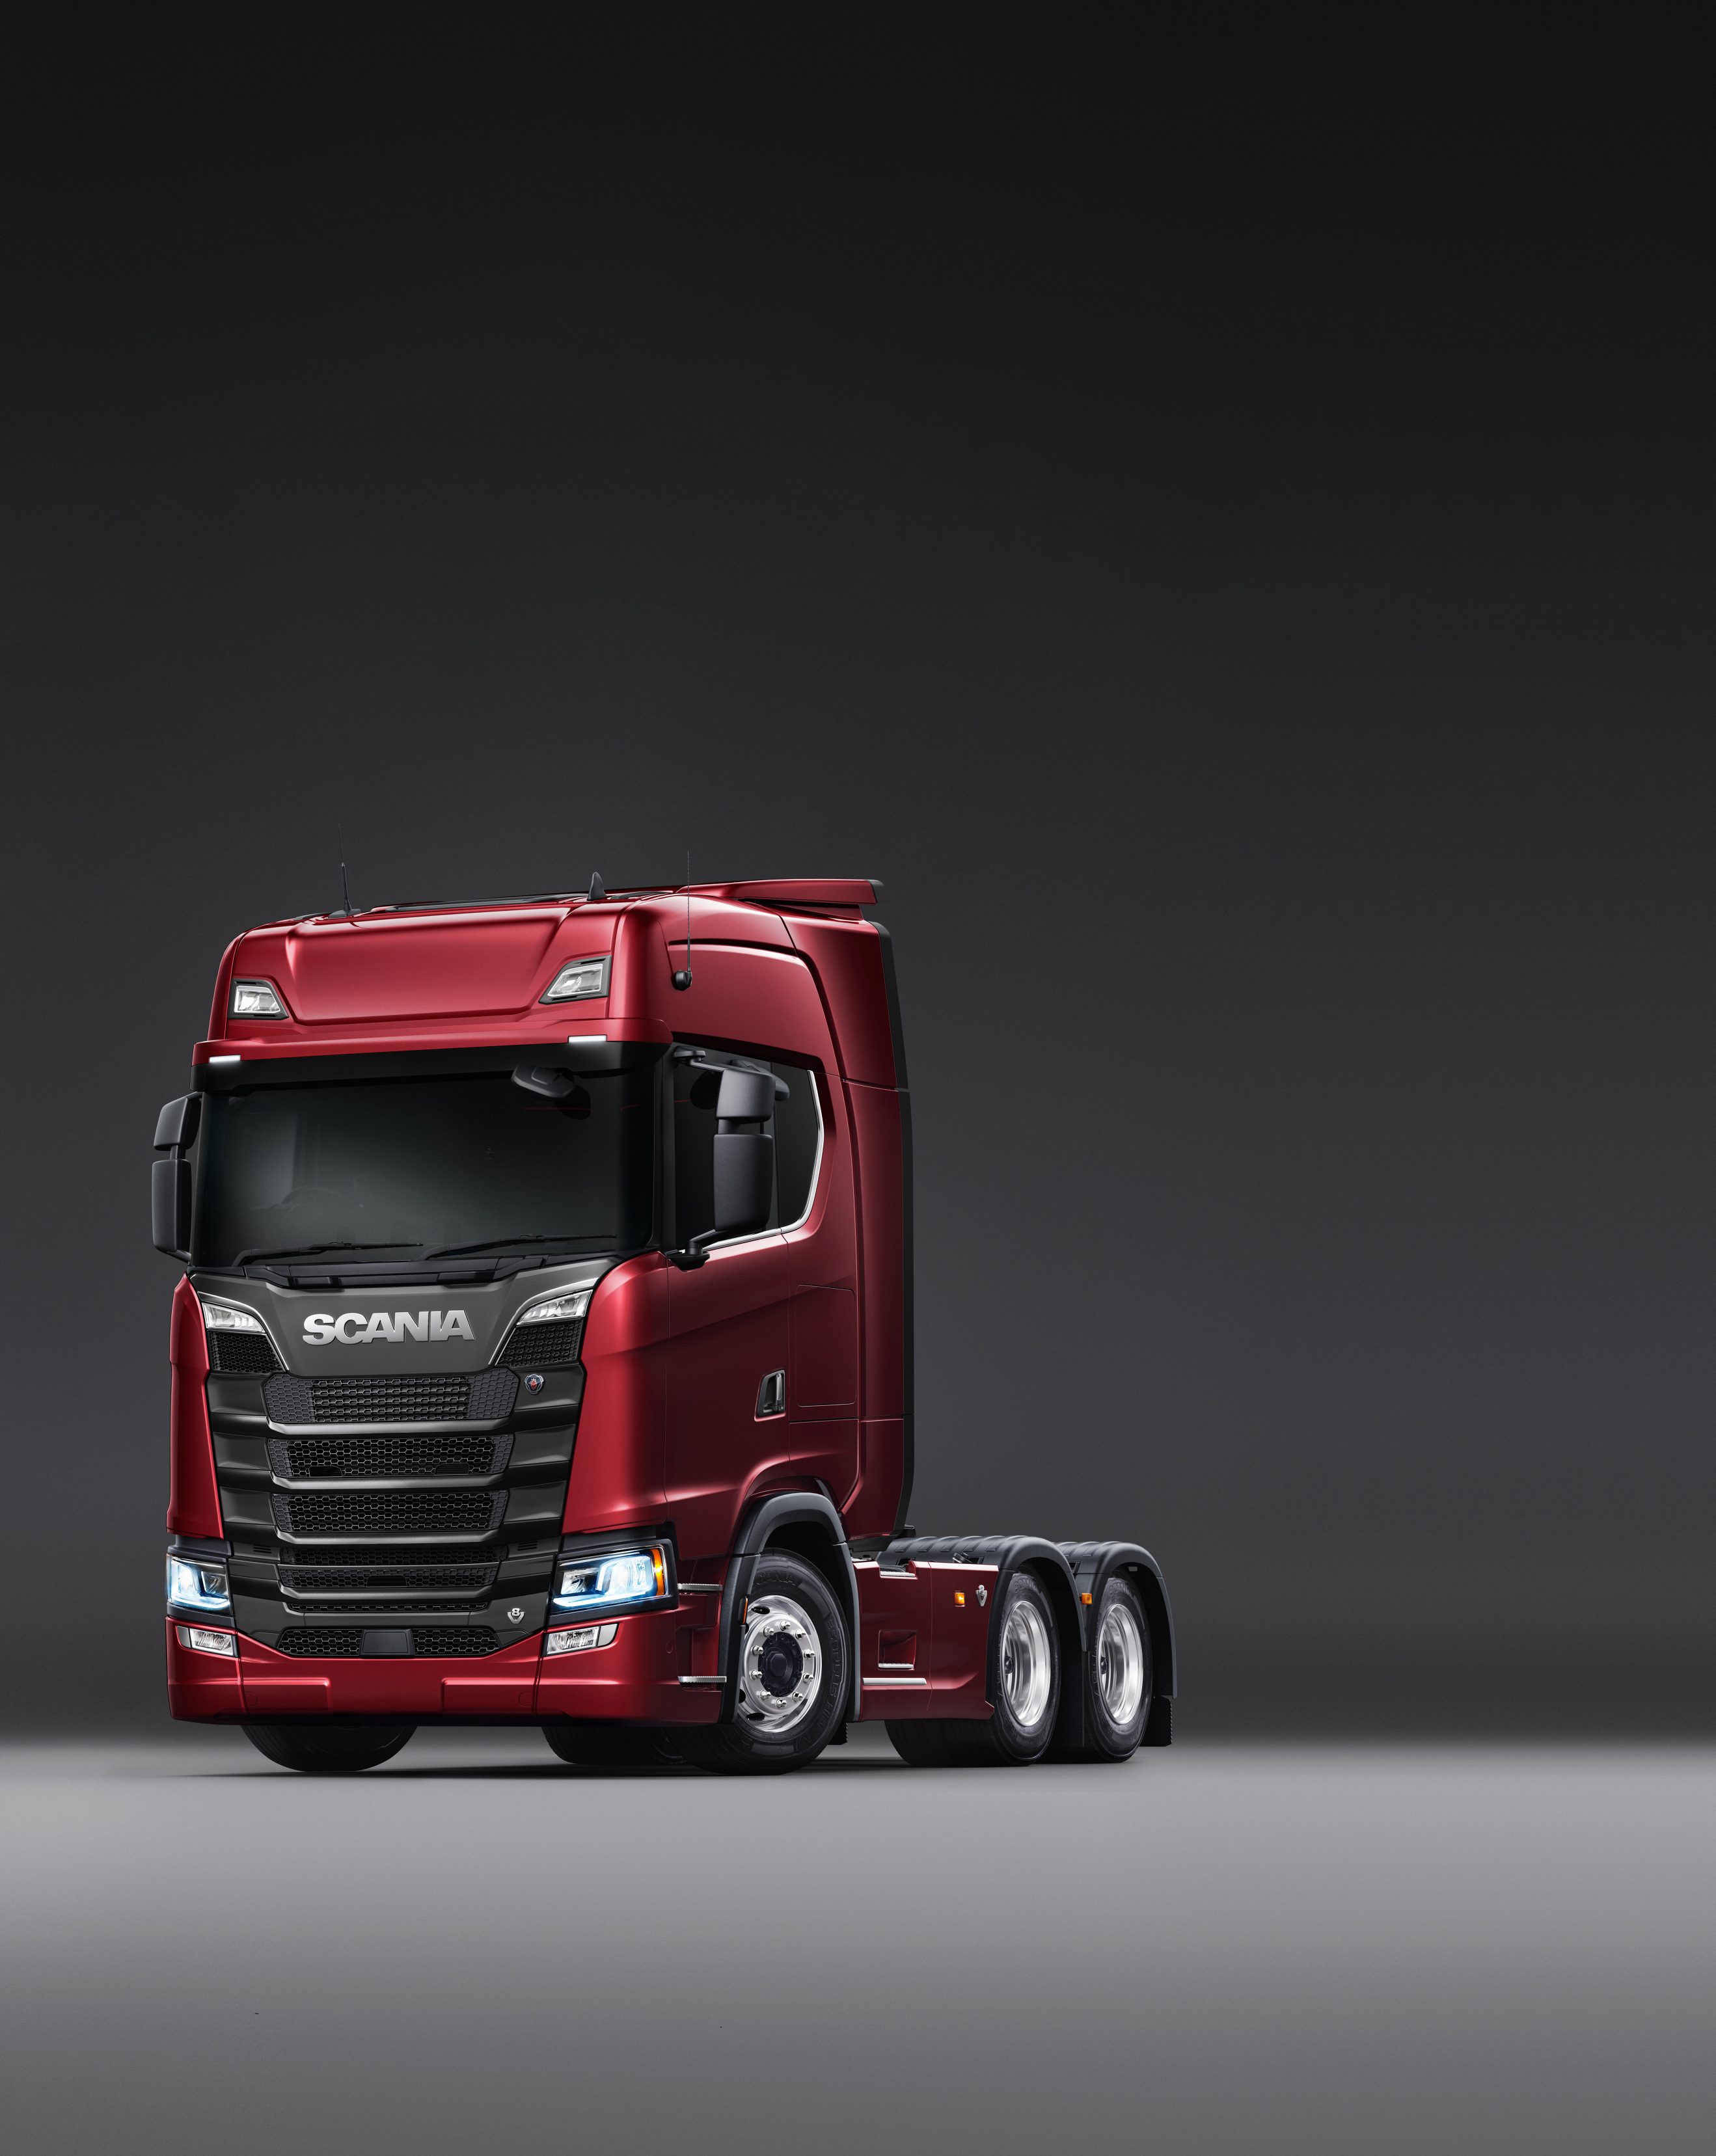 New Scania range arrives on the block - Fleetwatch